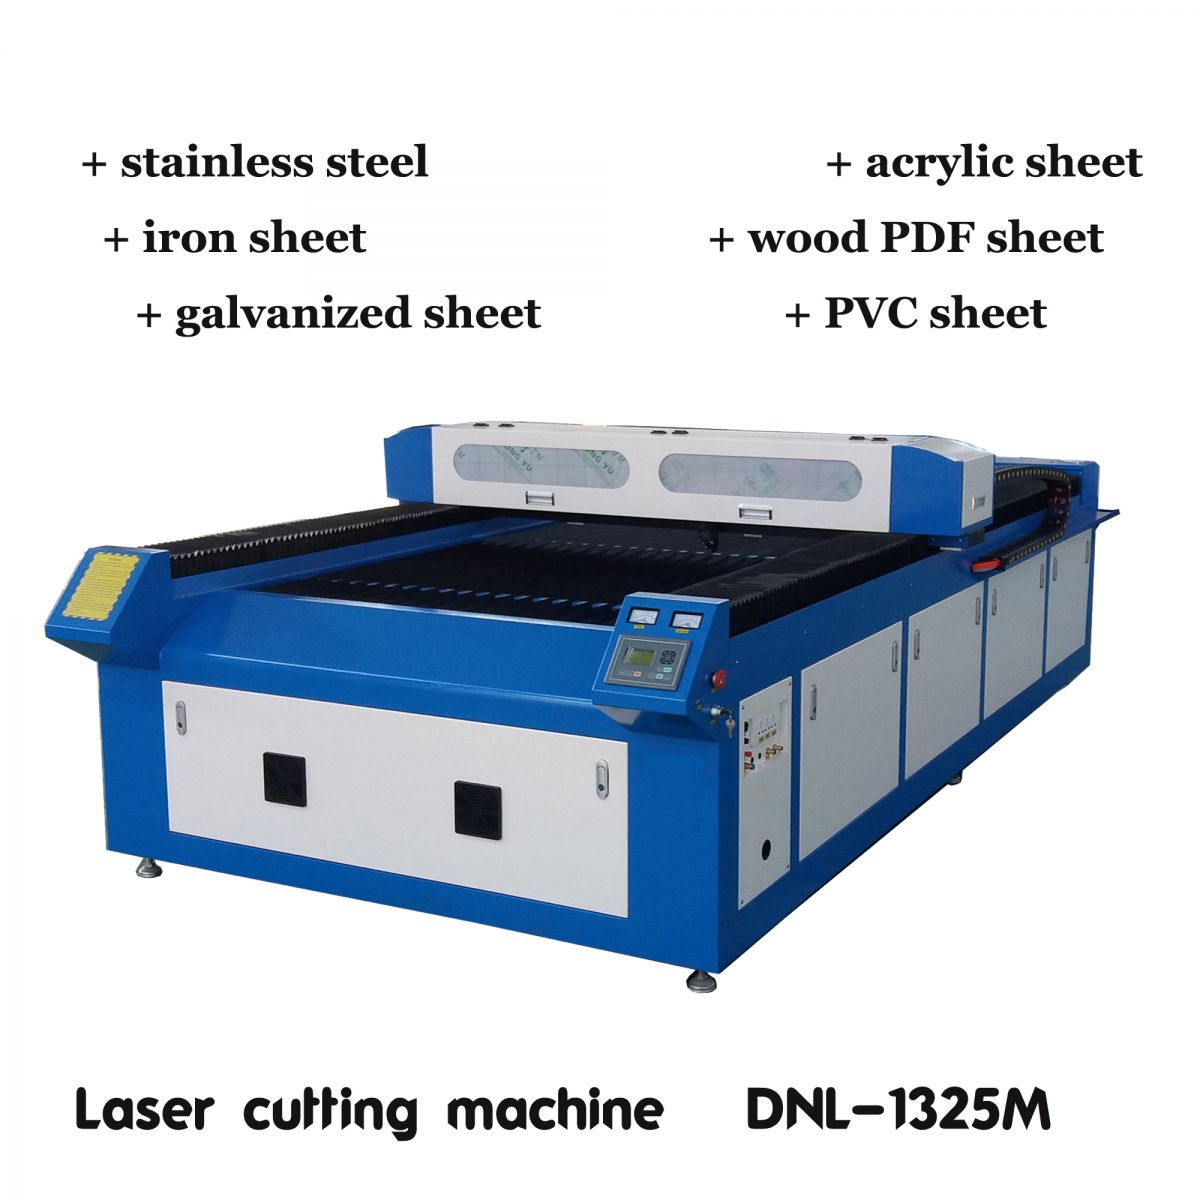 acrylic cutting machine price